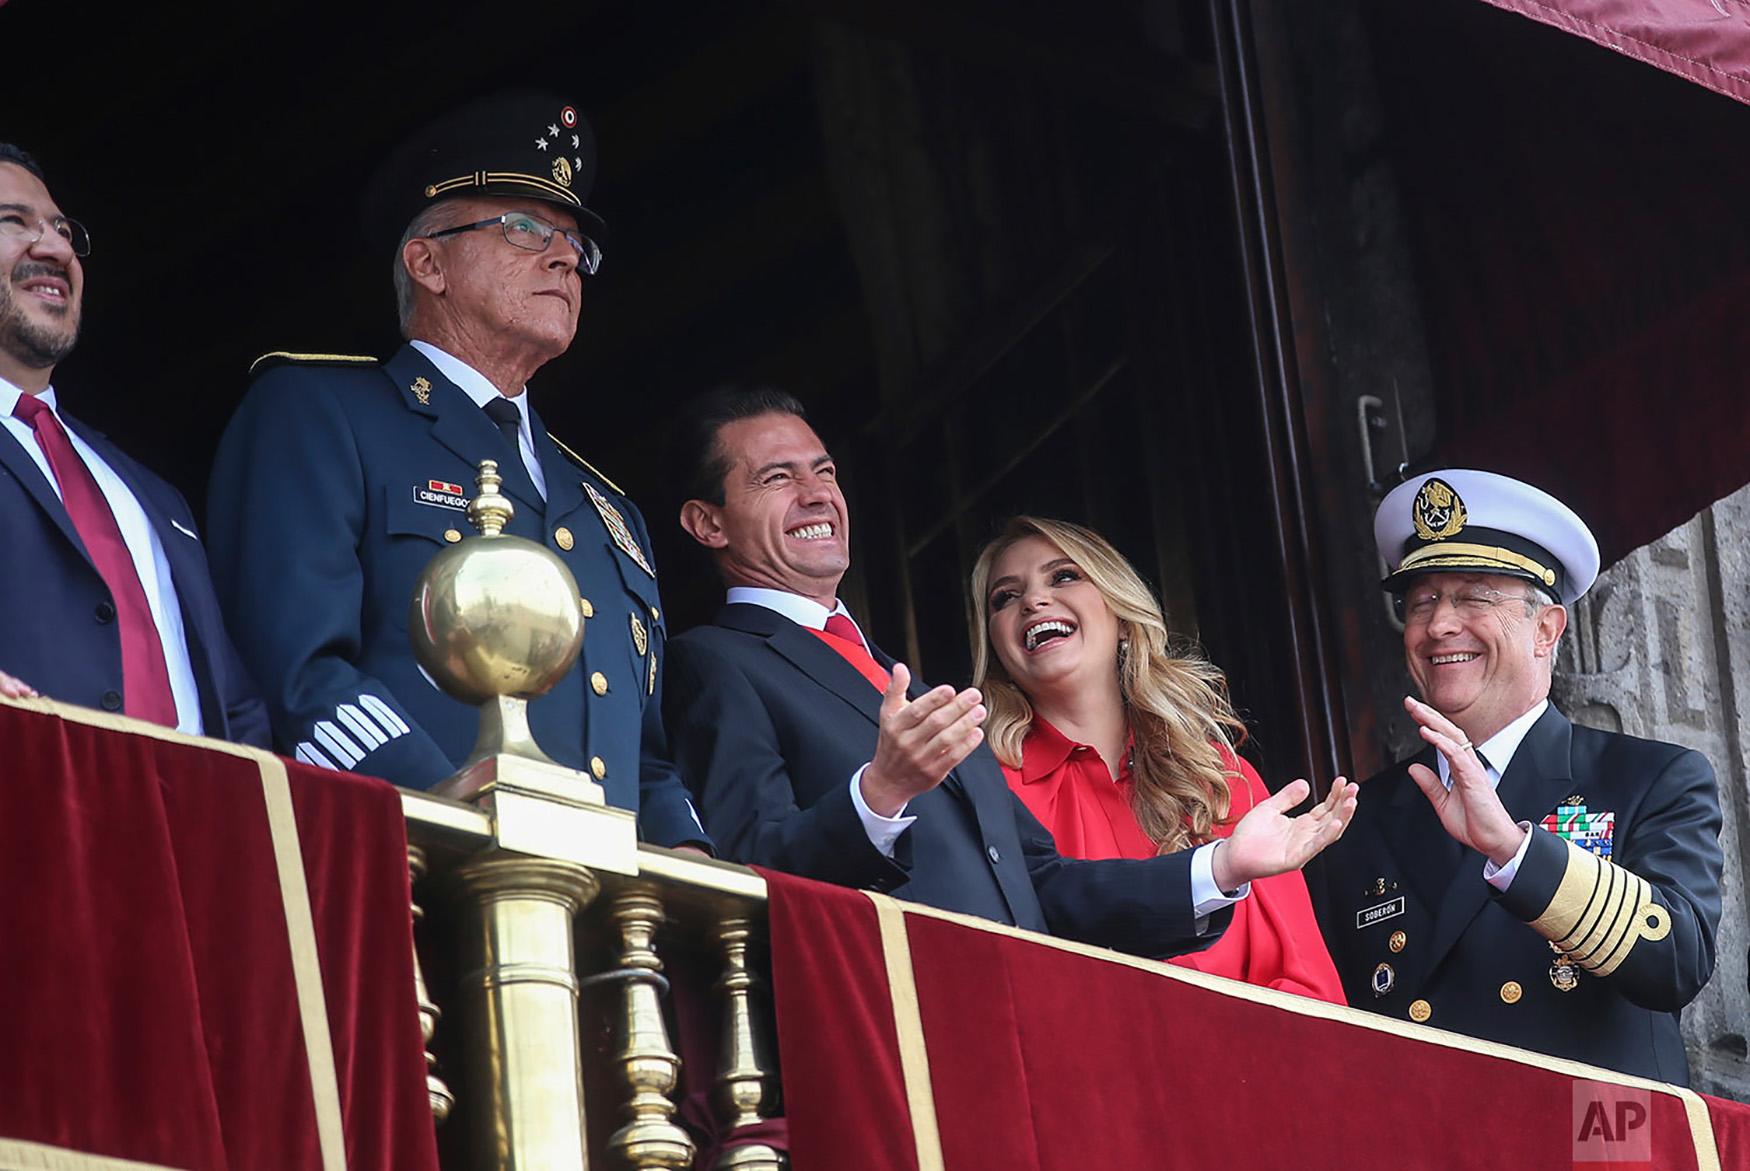 Mexican President Enrique Pena Nieto, center left, and first lady Angelica Rivera, share a laugh with Admiral Vidal Soberon, right, during the Independence Day military parade in the Zocalo of Mexico City, Sept. 16, 2018. Mexico is celebrating its independence from Spain. (AP Photo/Anthony Vazquez)